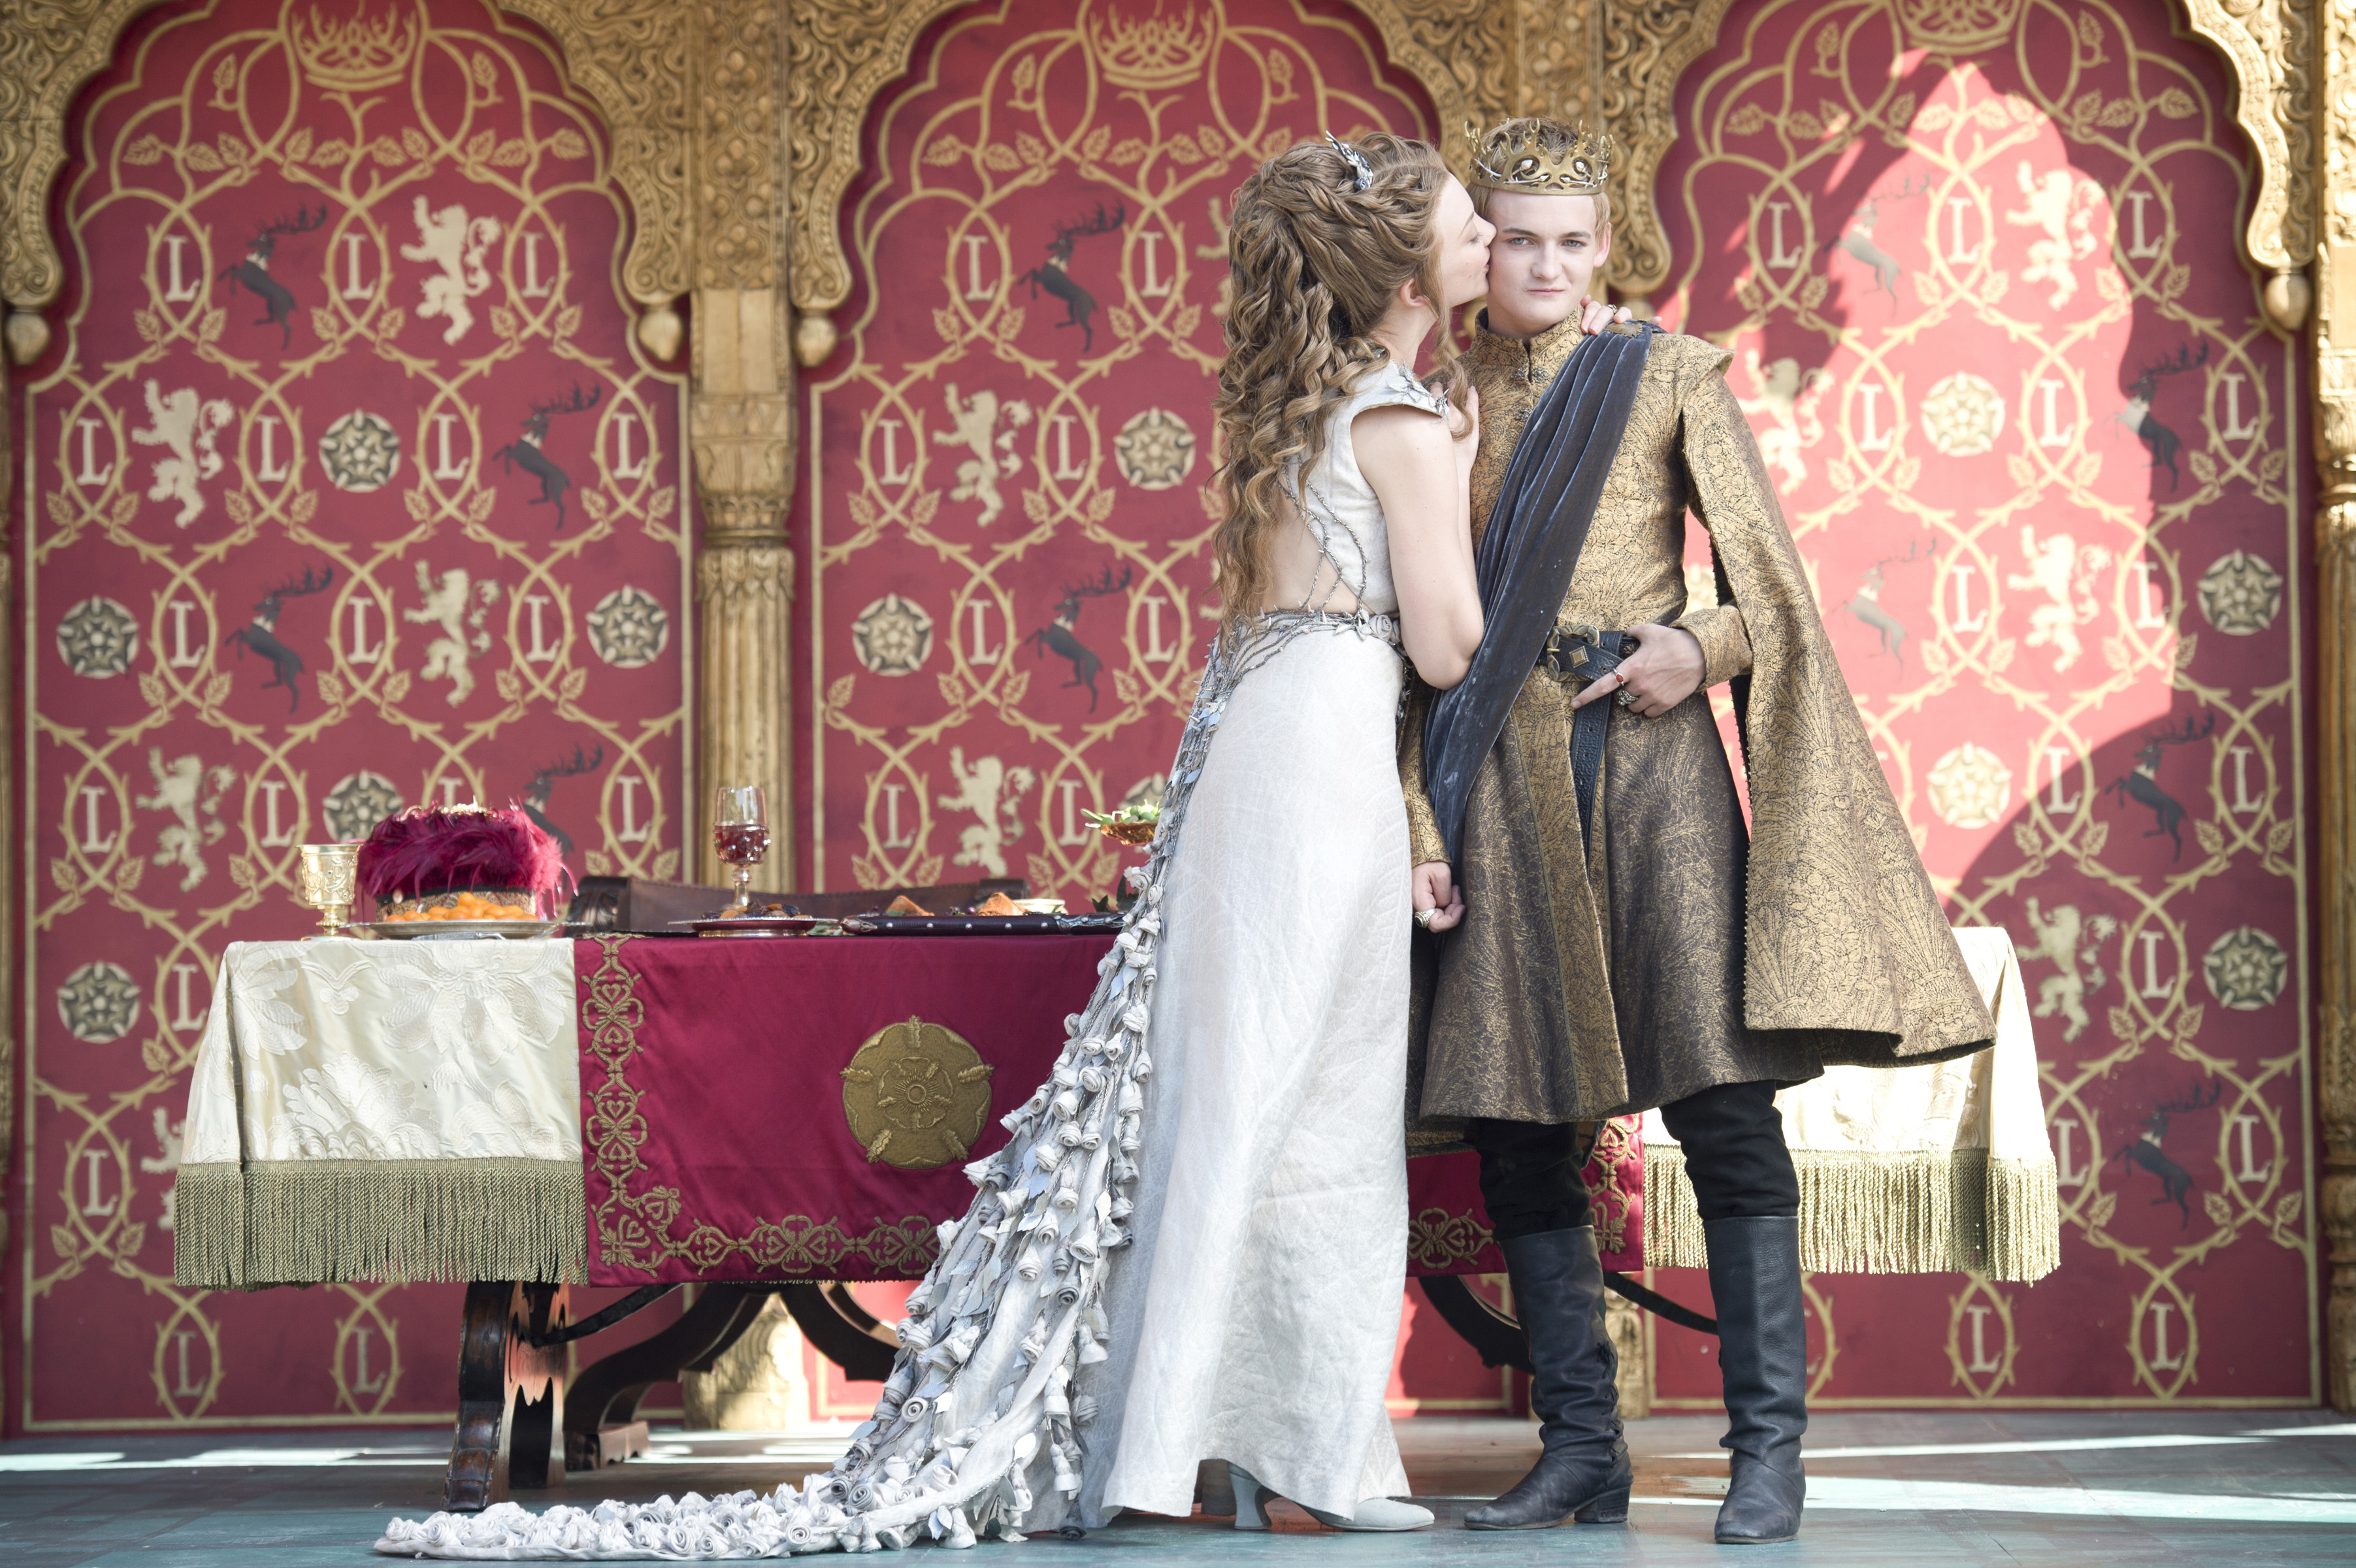 Game of Thrones Close-Up: Joffrey's Wedding Scene - Time Game of Thrones Close-Up: Ain't No Party Like a Westeros Party - 웹